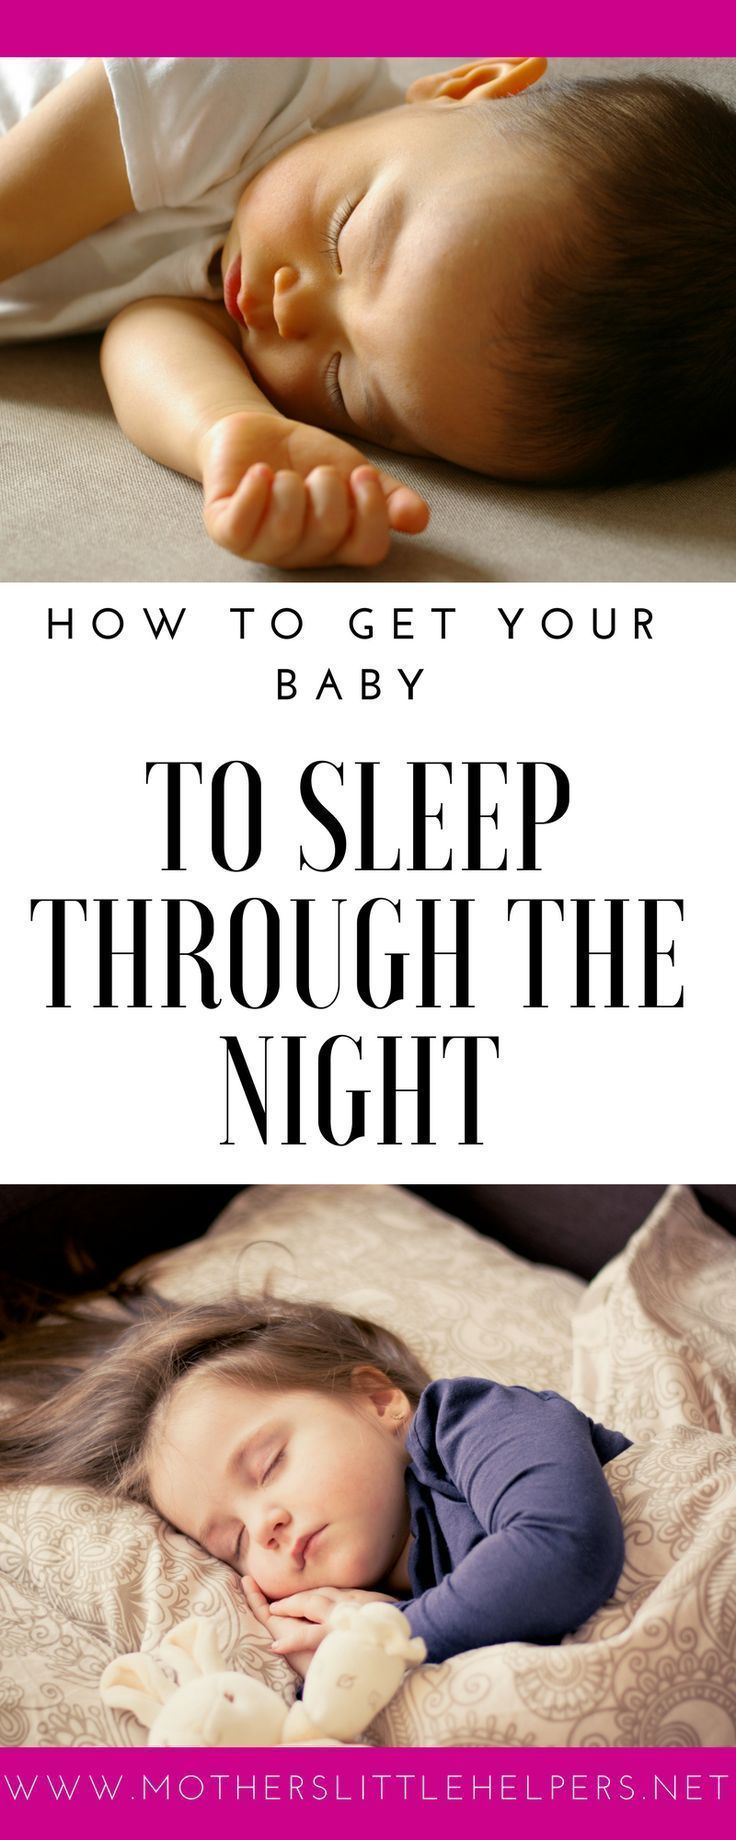 0fd1a8f2e How to Get Your Baby to Sleep Through the Night